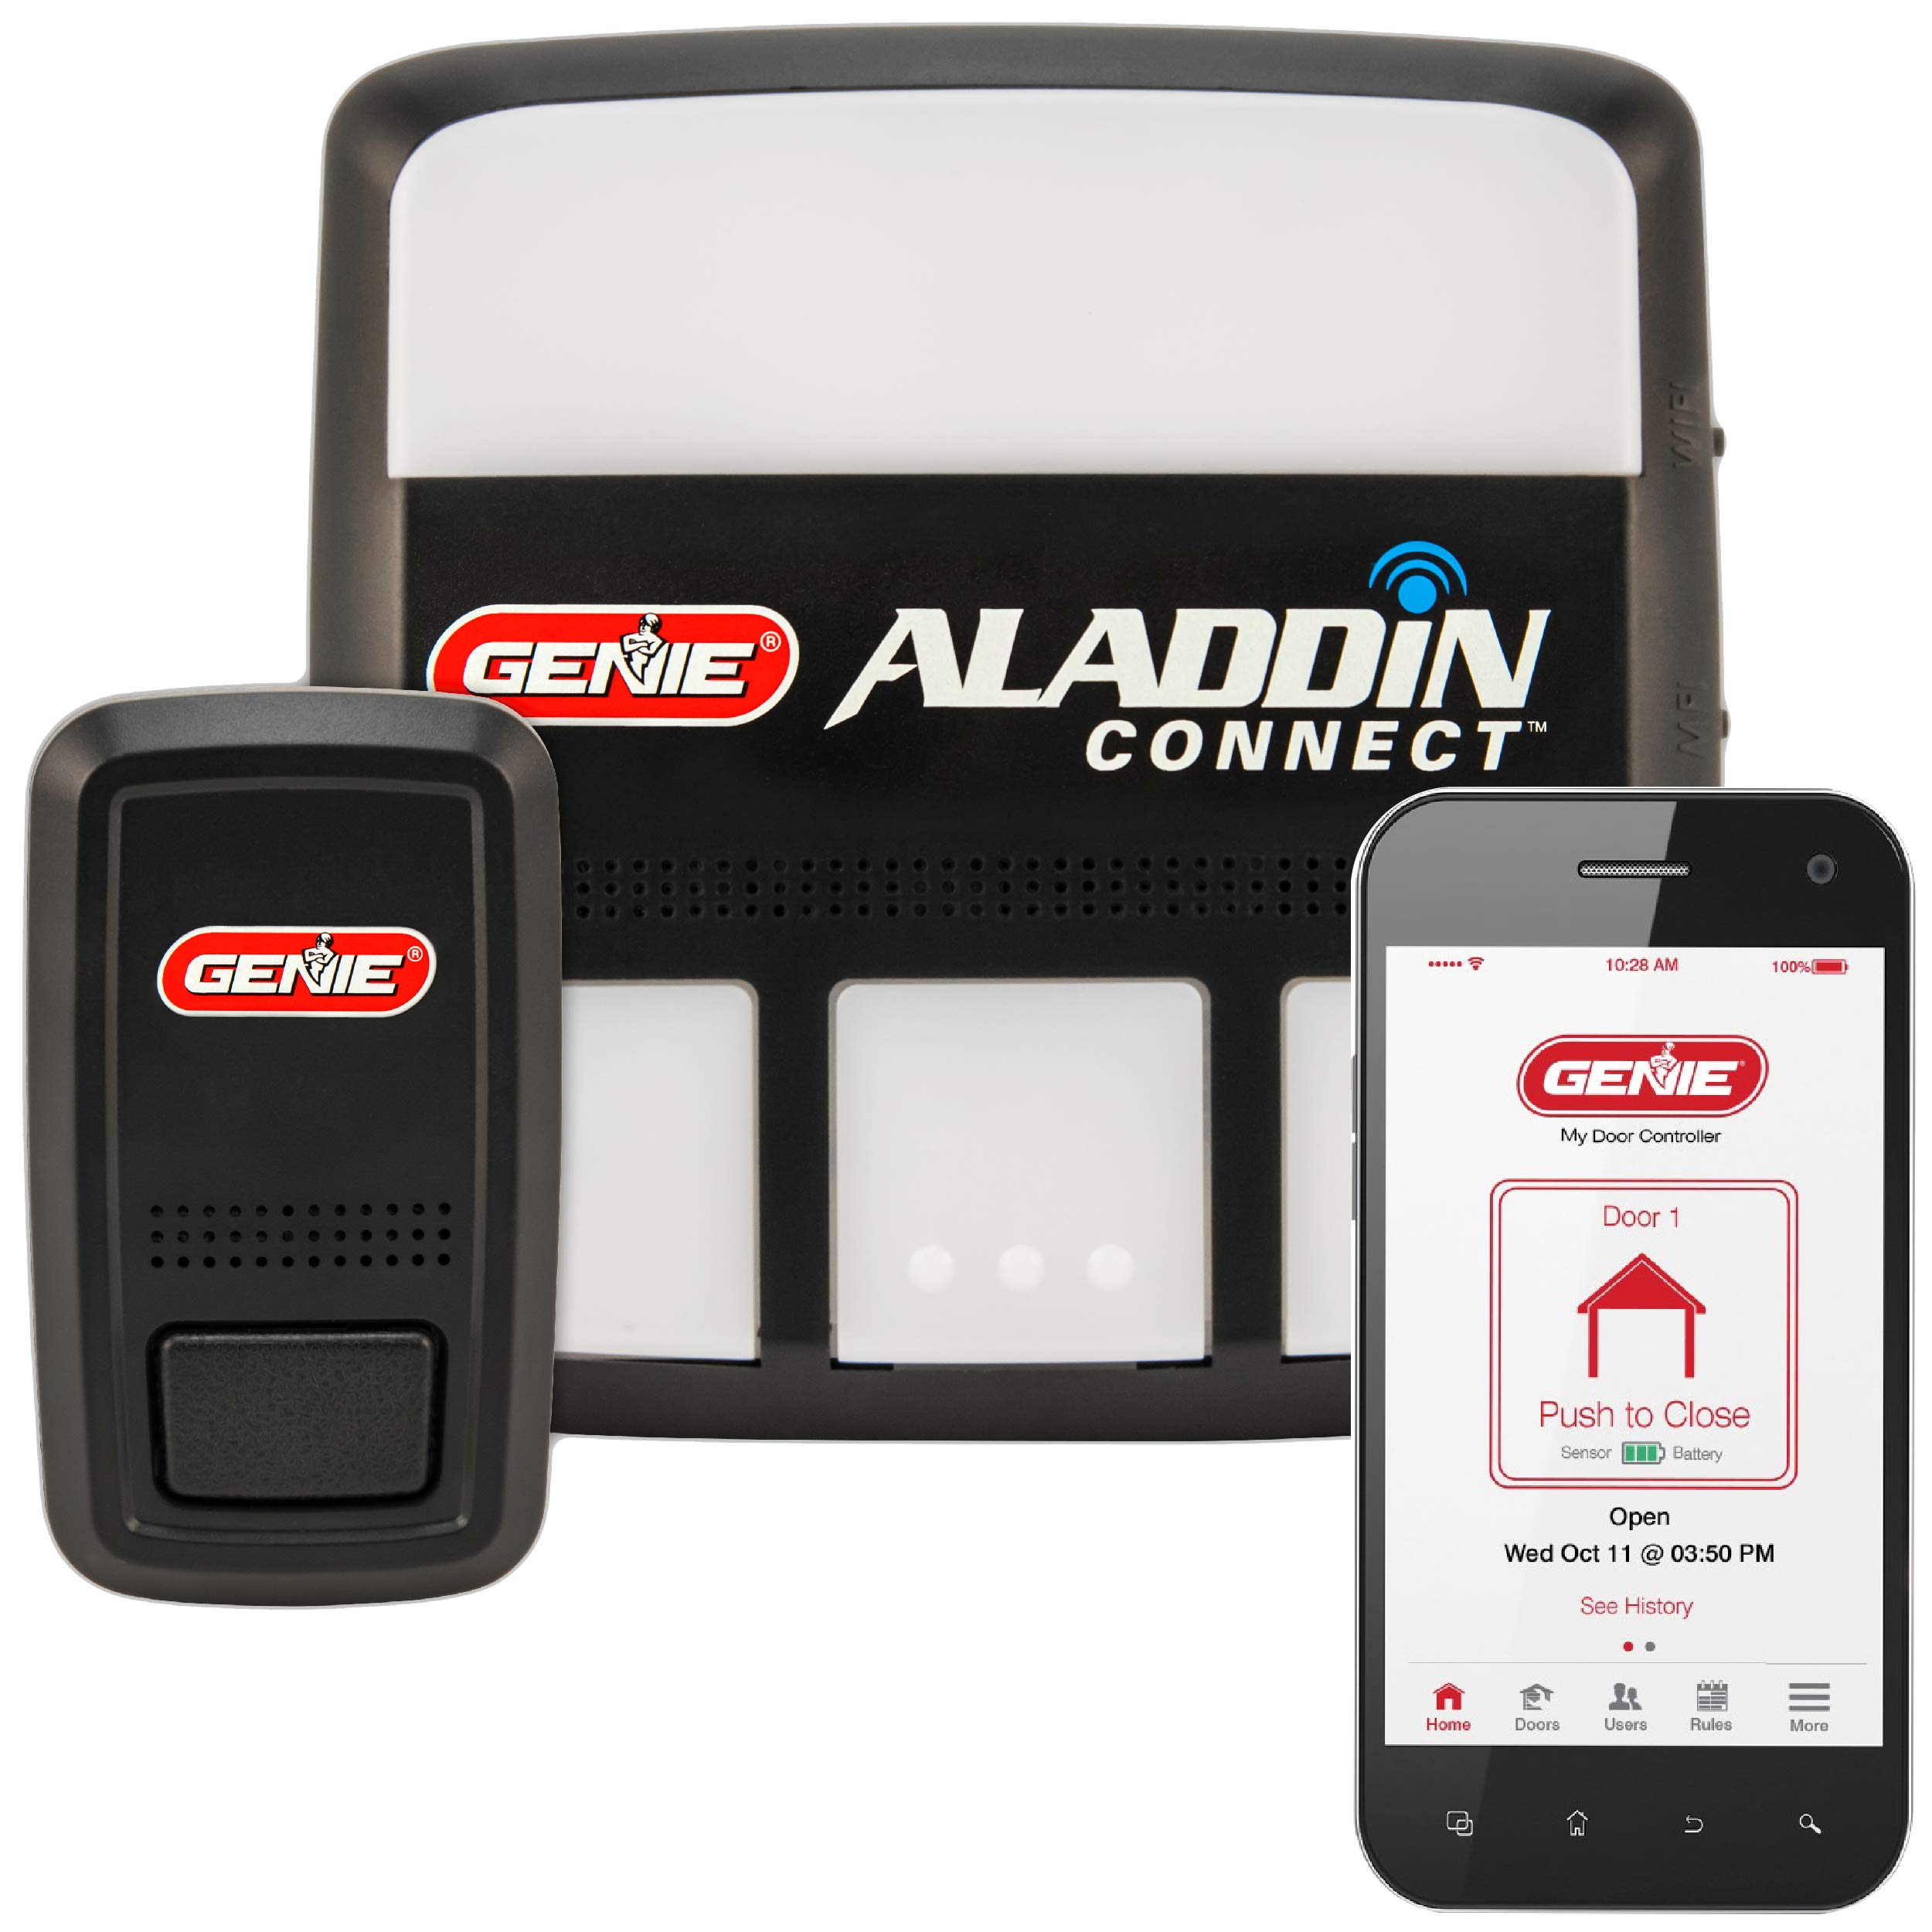 Genie Aladdin Connect - Smart Garage Door Opener - Compatible with Amazon Alexa and Google Assistant - Monitor, Open and Close from Anywhere with Smartphone (iPhone or Android),  (Item Ships in Box) by Genie